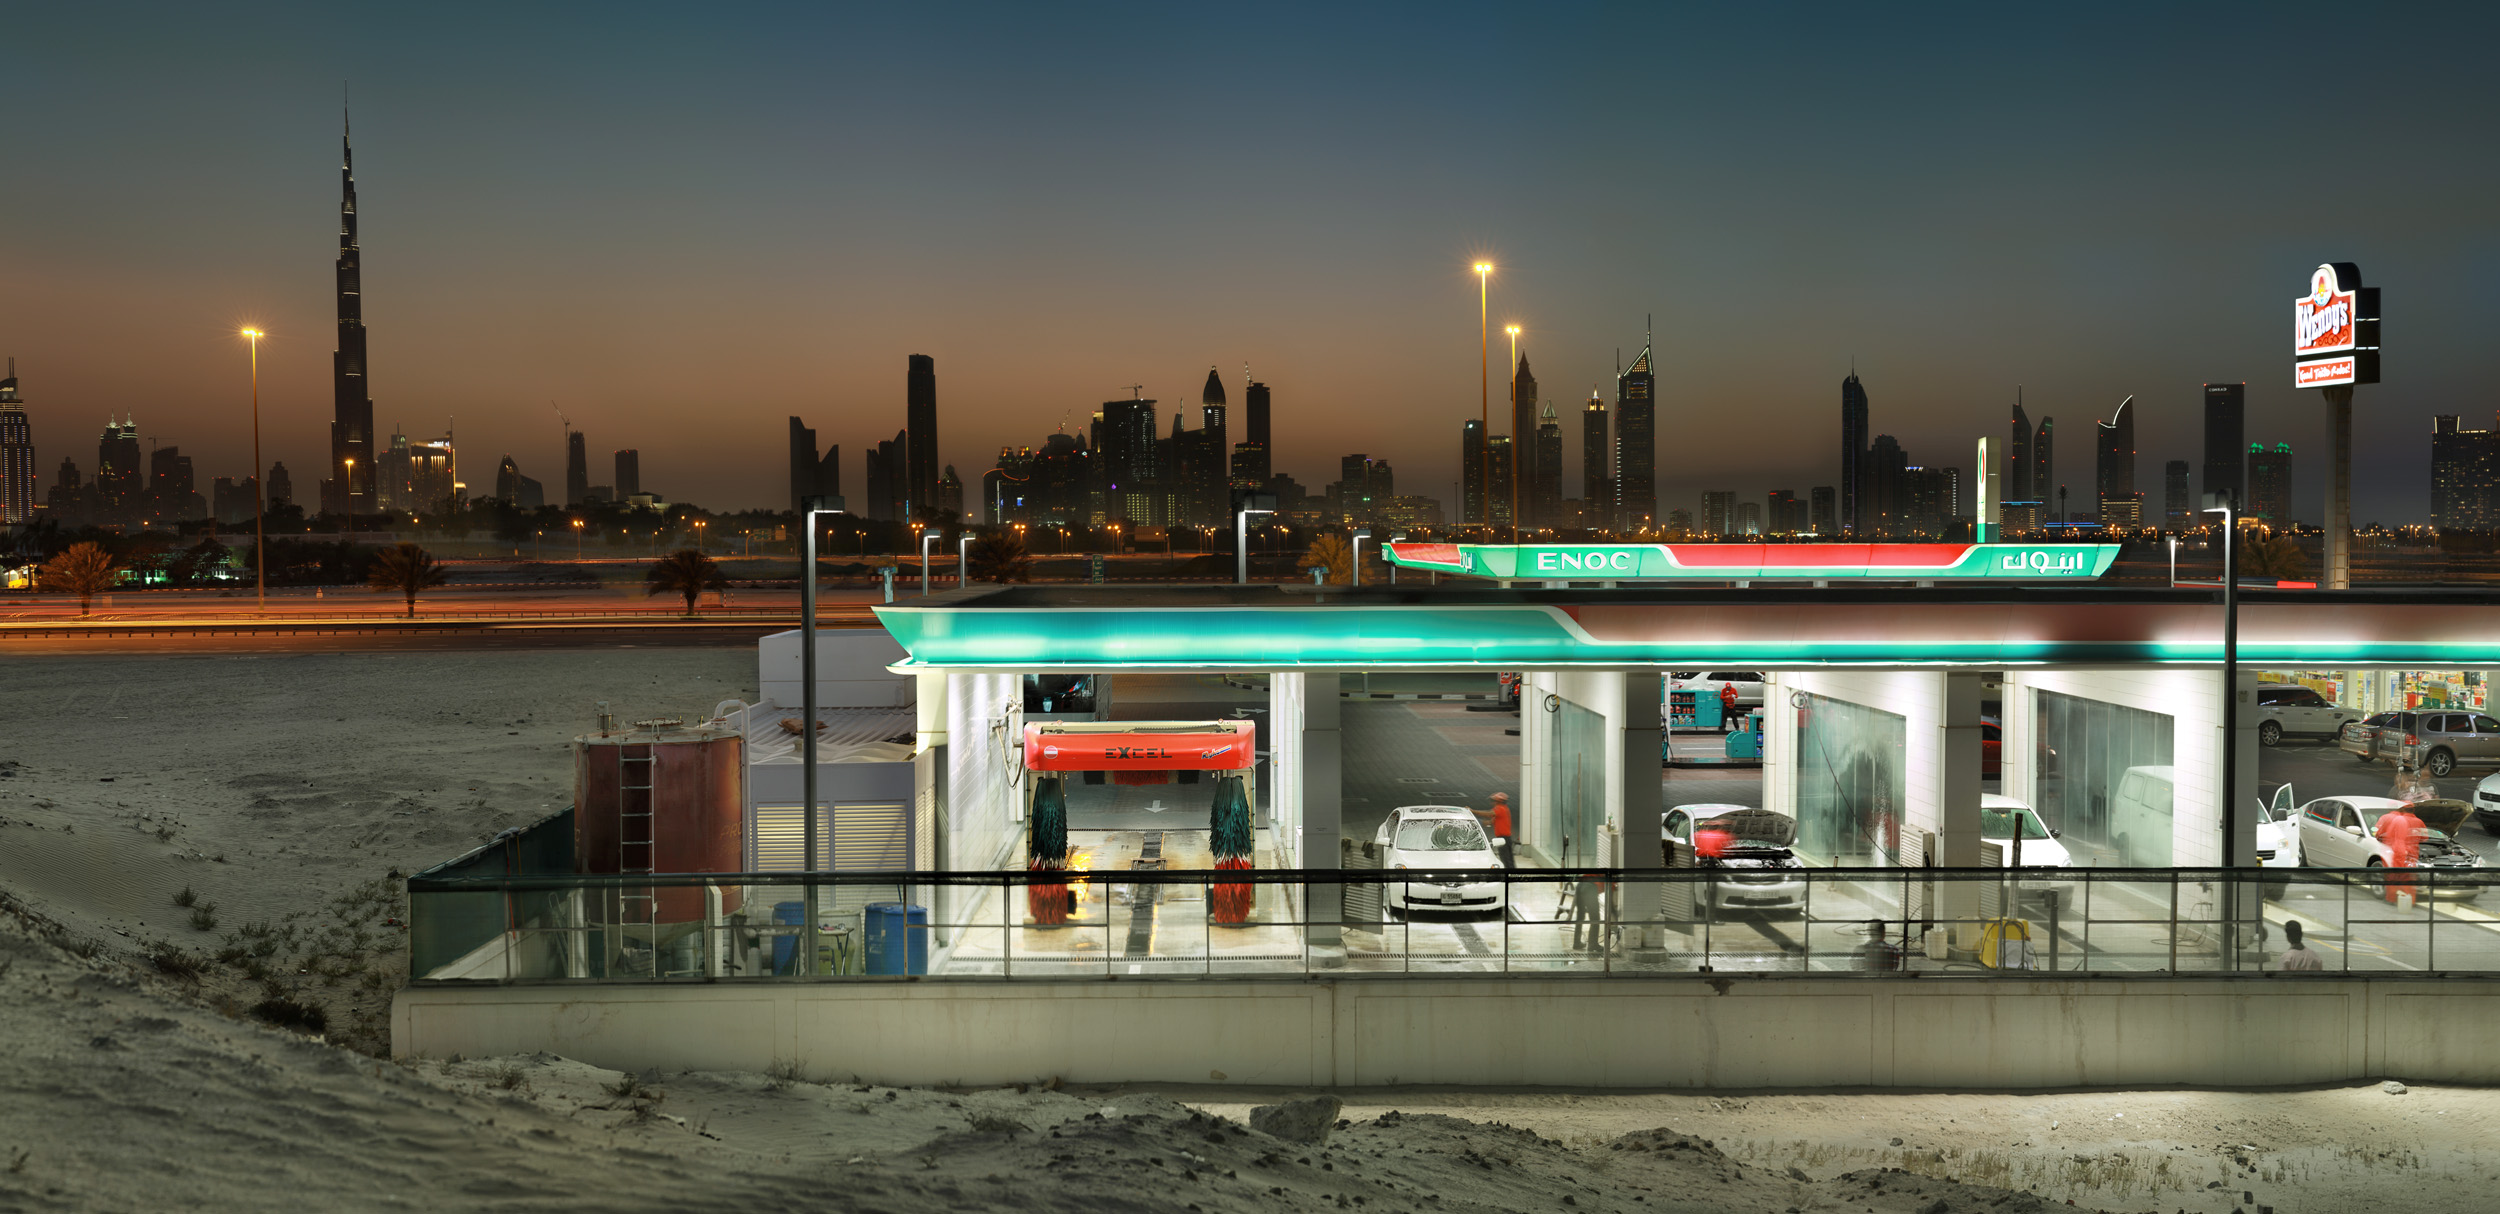 Gas Station at Dusk - Dubai, UAE 2013